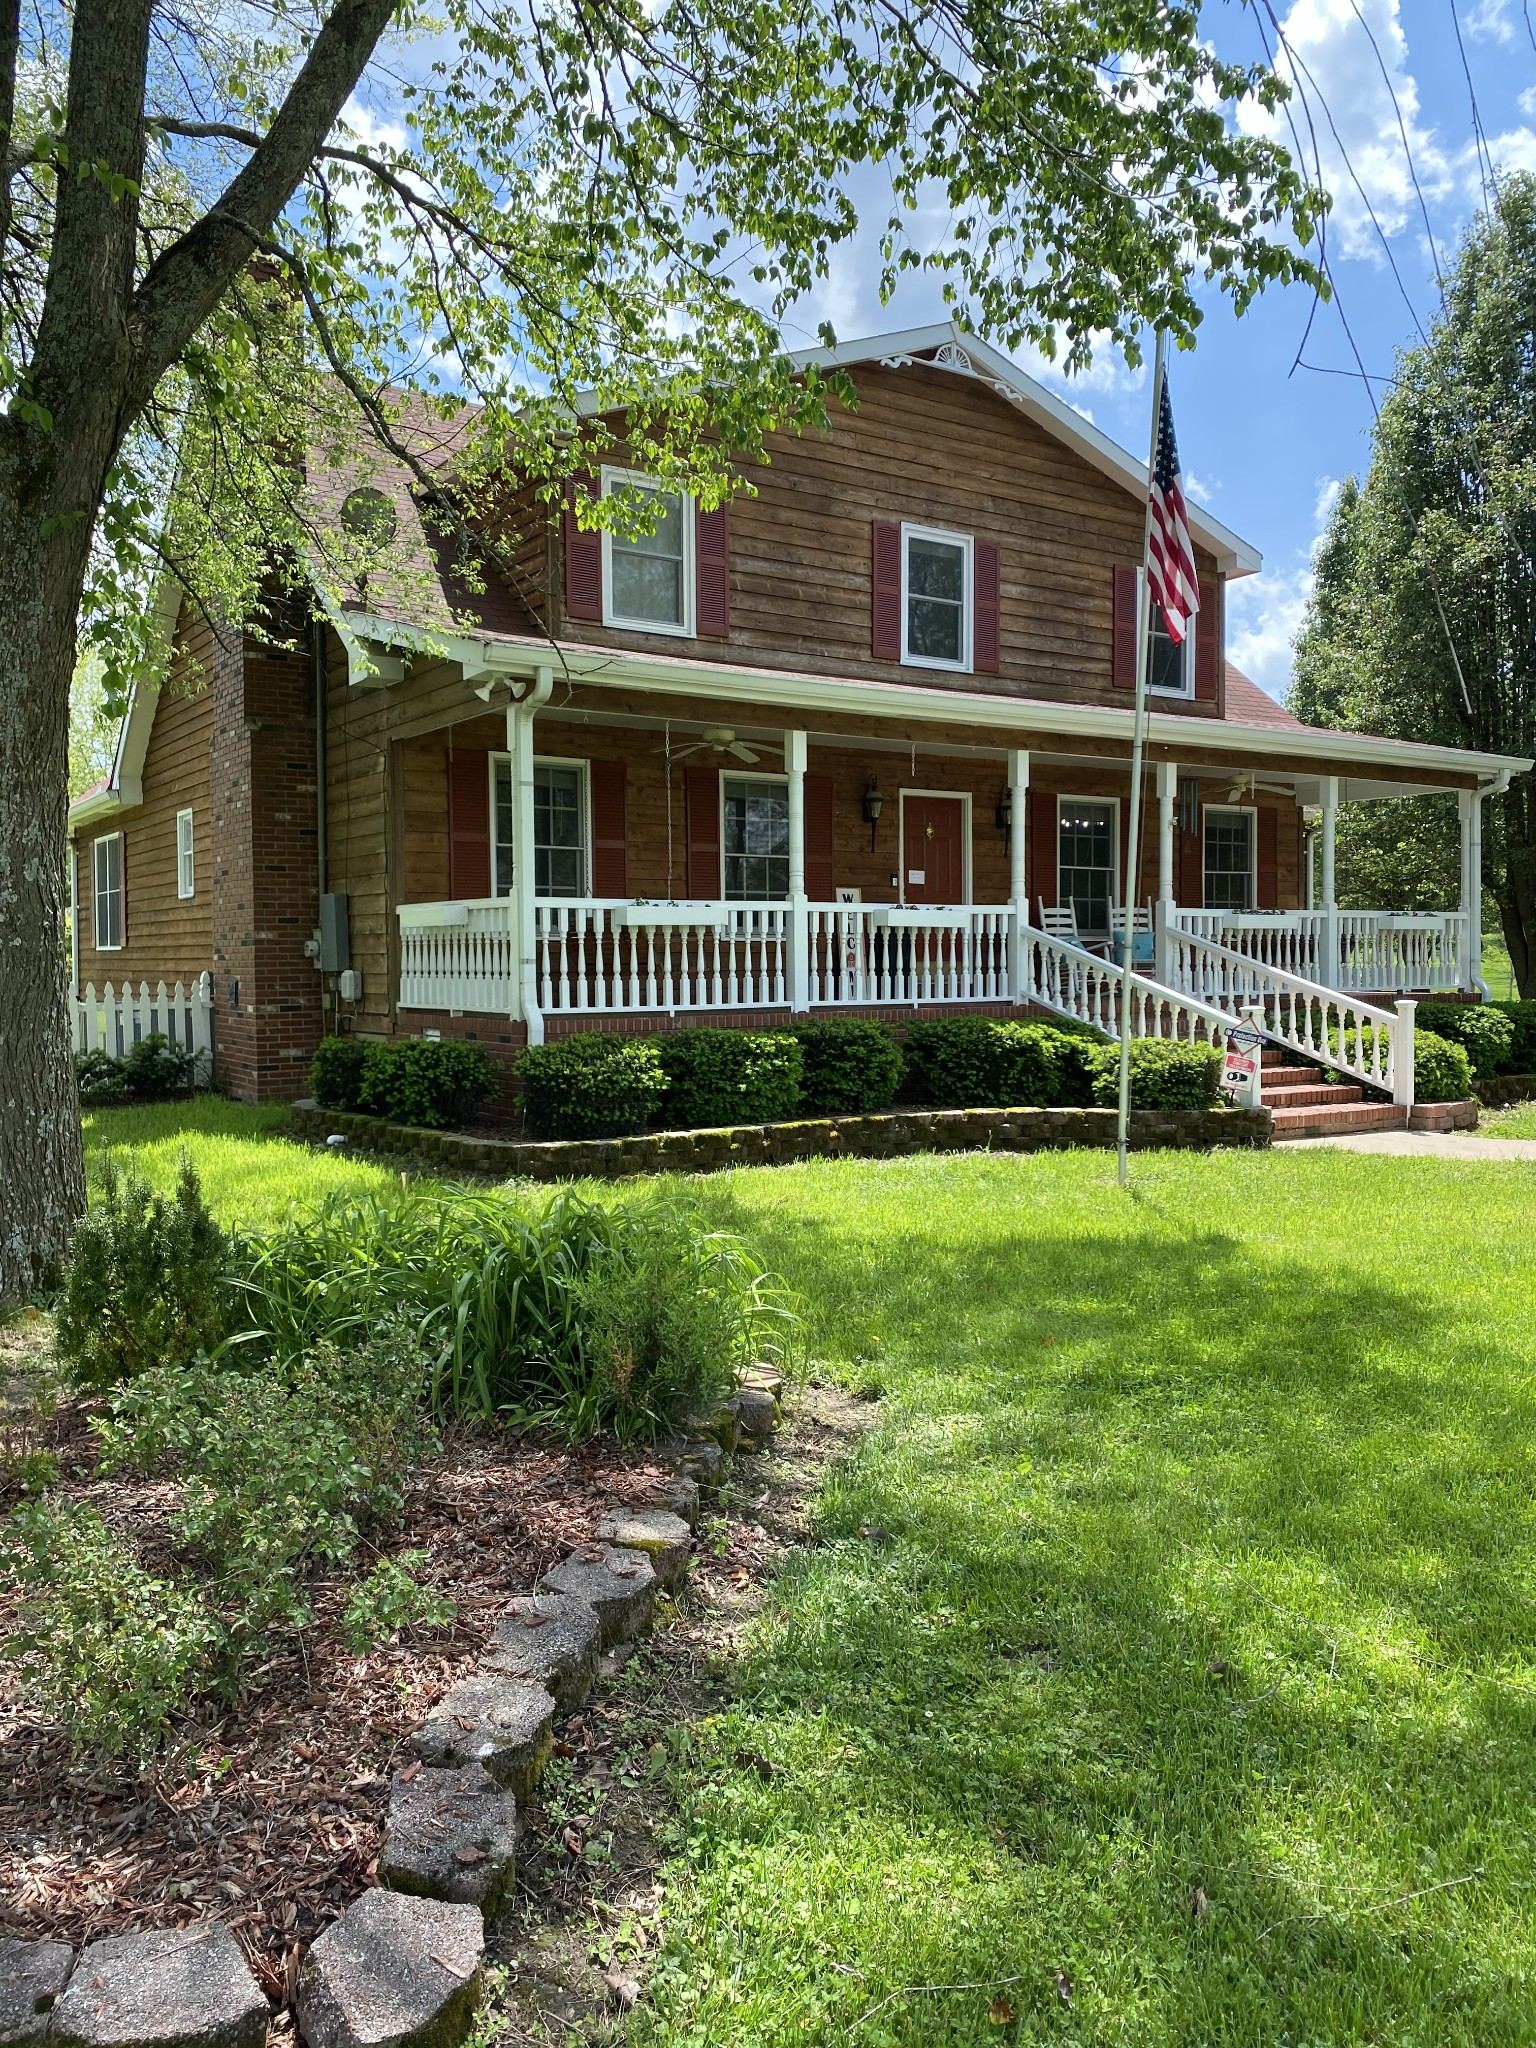 1216 Anderson Rd, Hendersonville, TN 37075 - Hendersonville, TN real estate listing